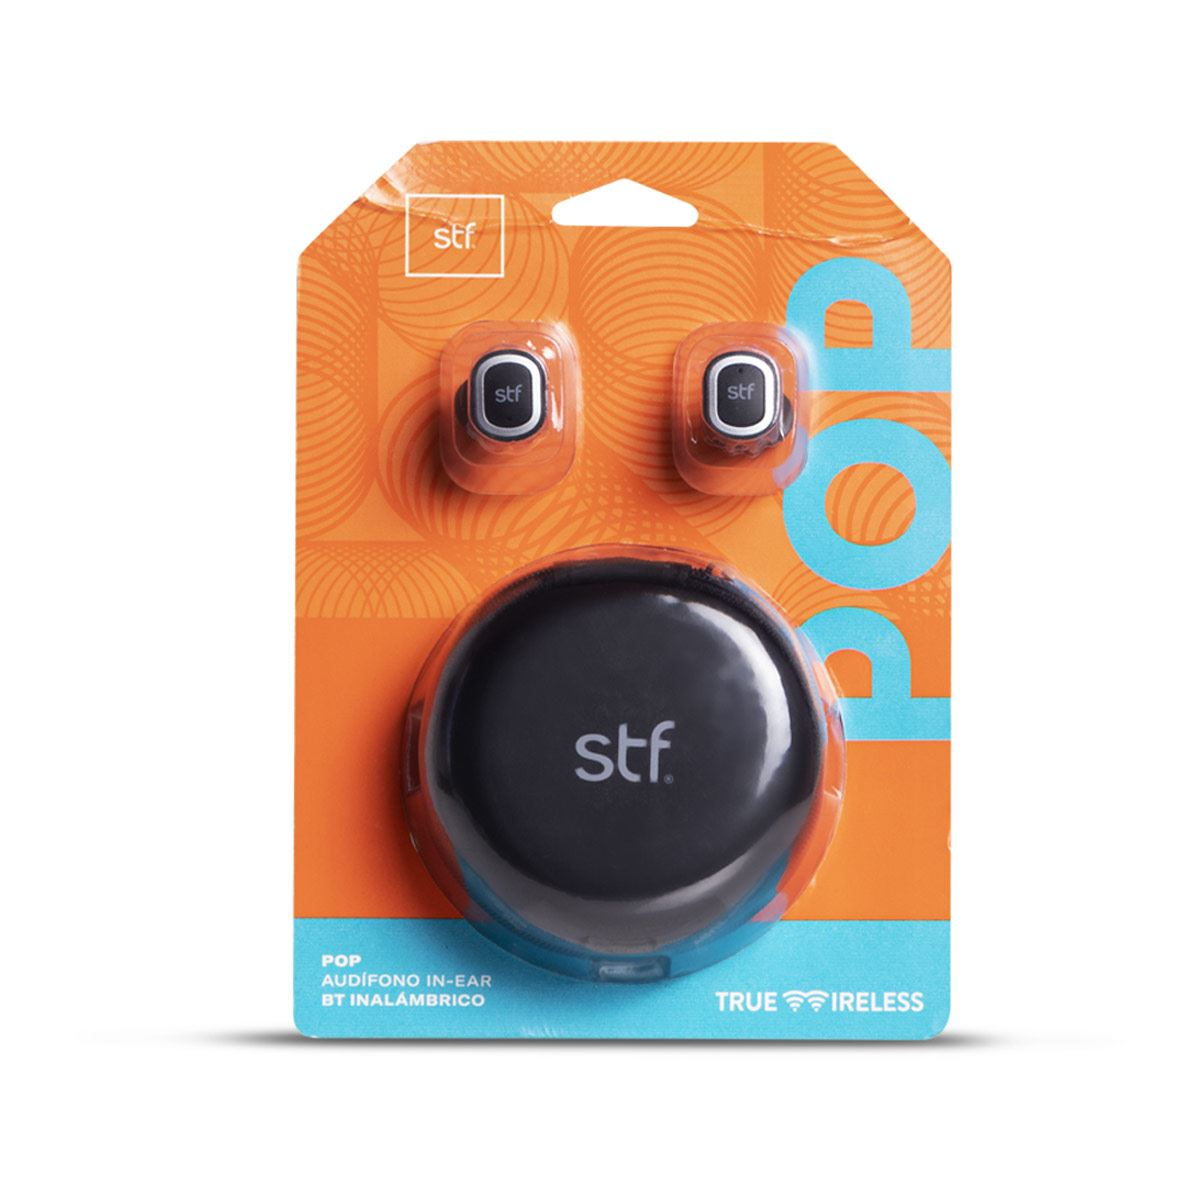 Audífonos Stuffactory Pop TrueWireless Negros